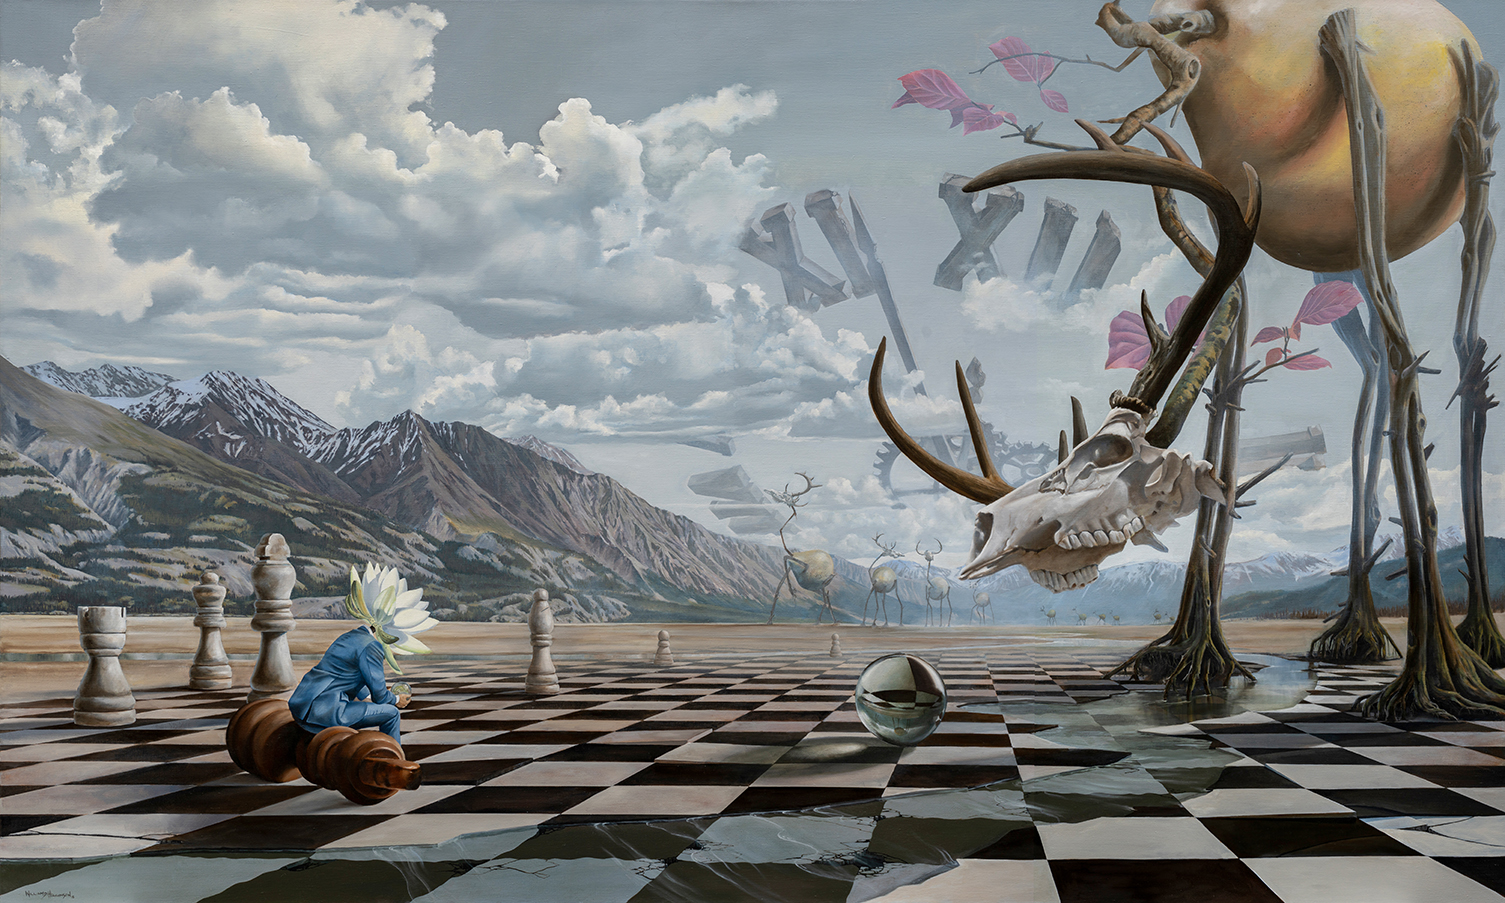 william higginson surrealism painting check chess game web.jpg